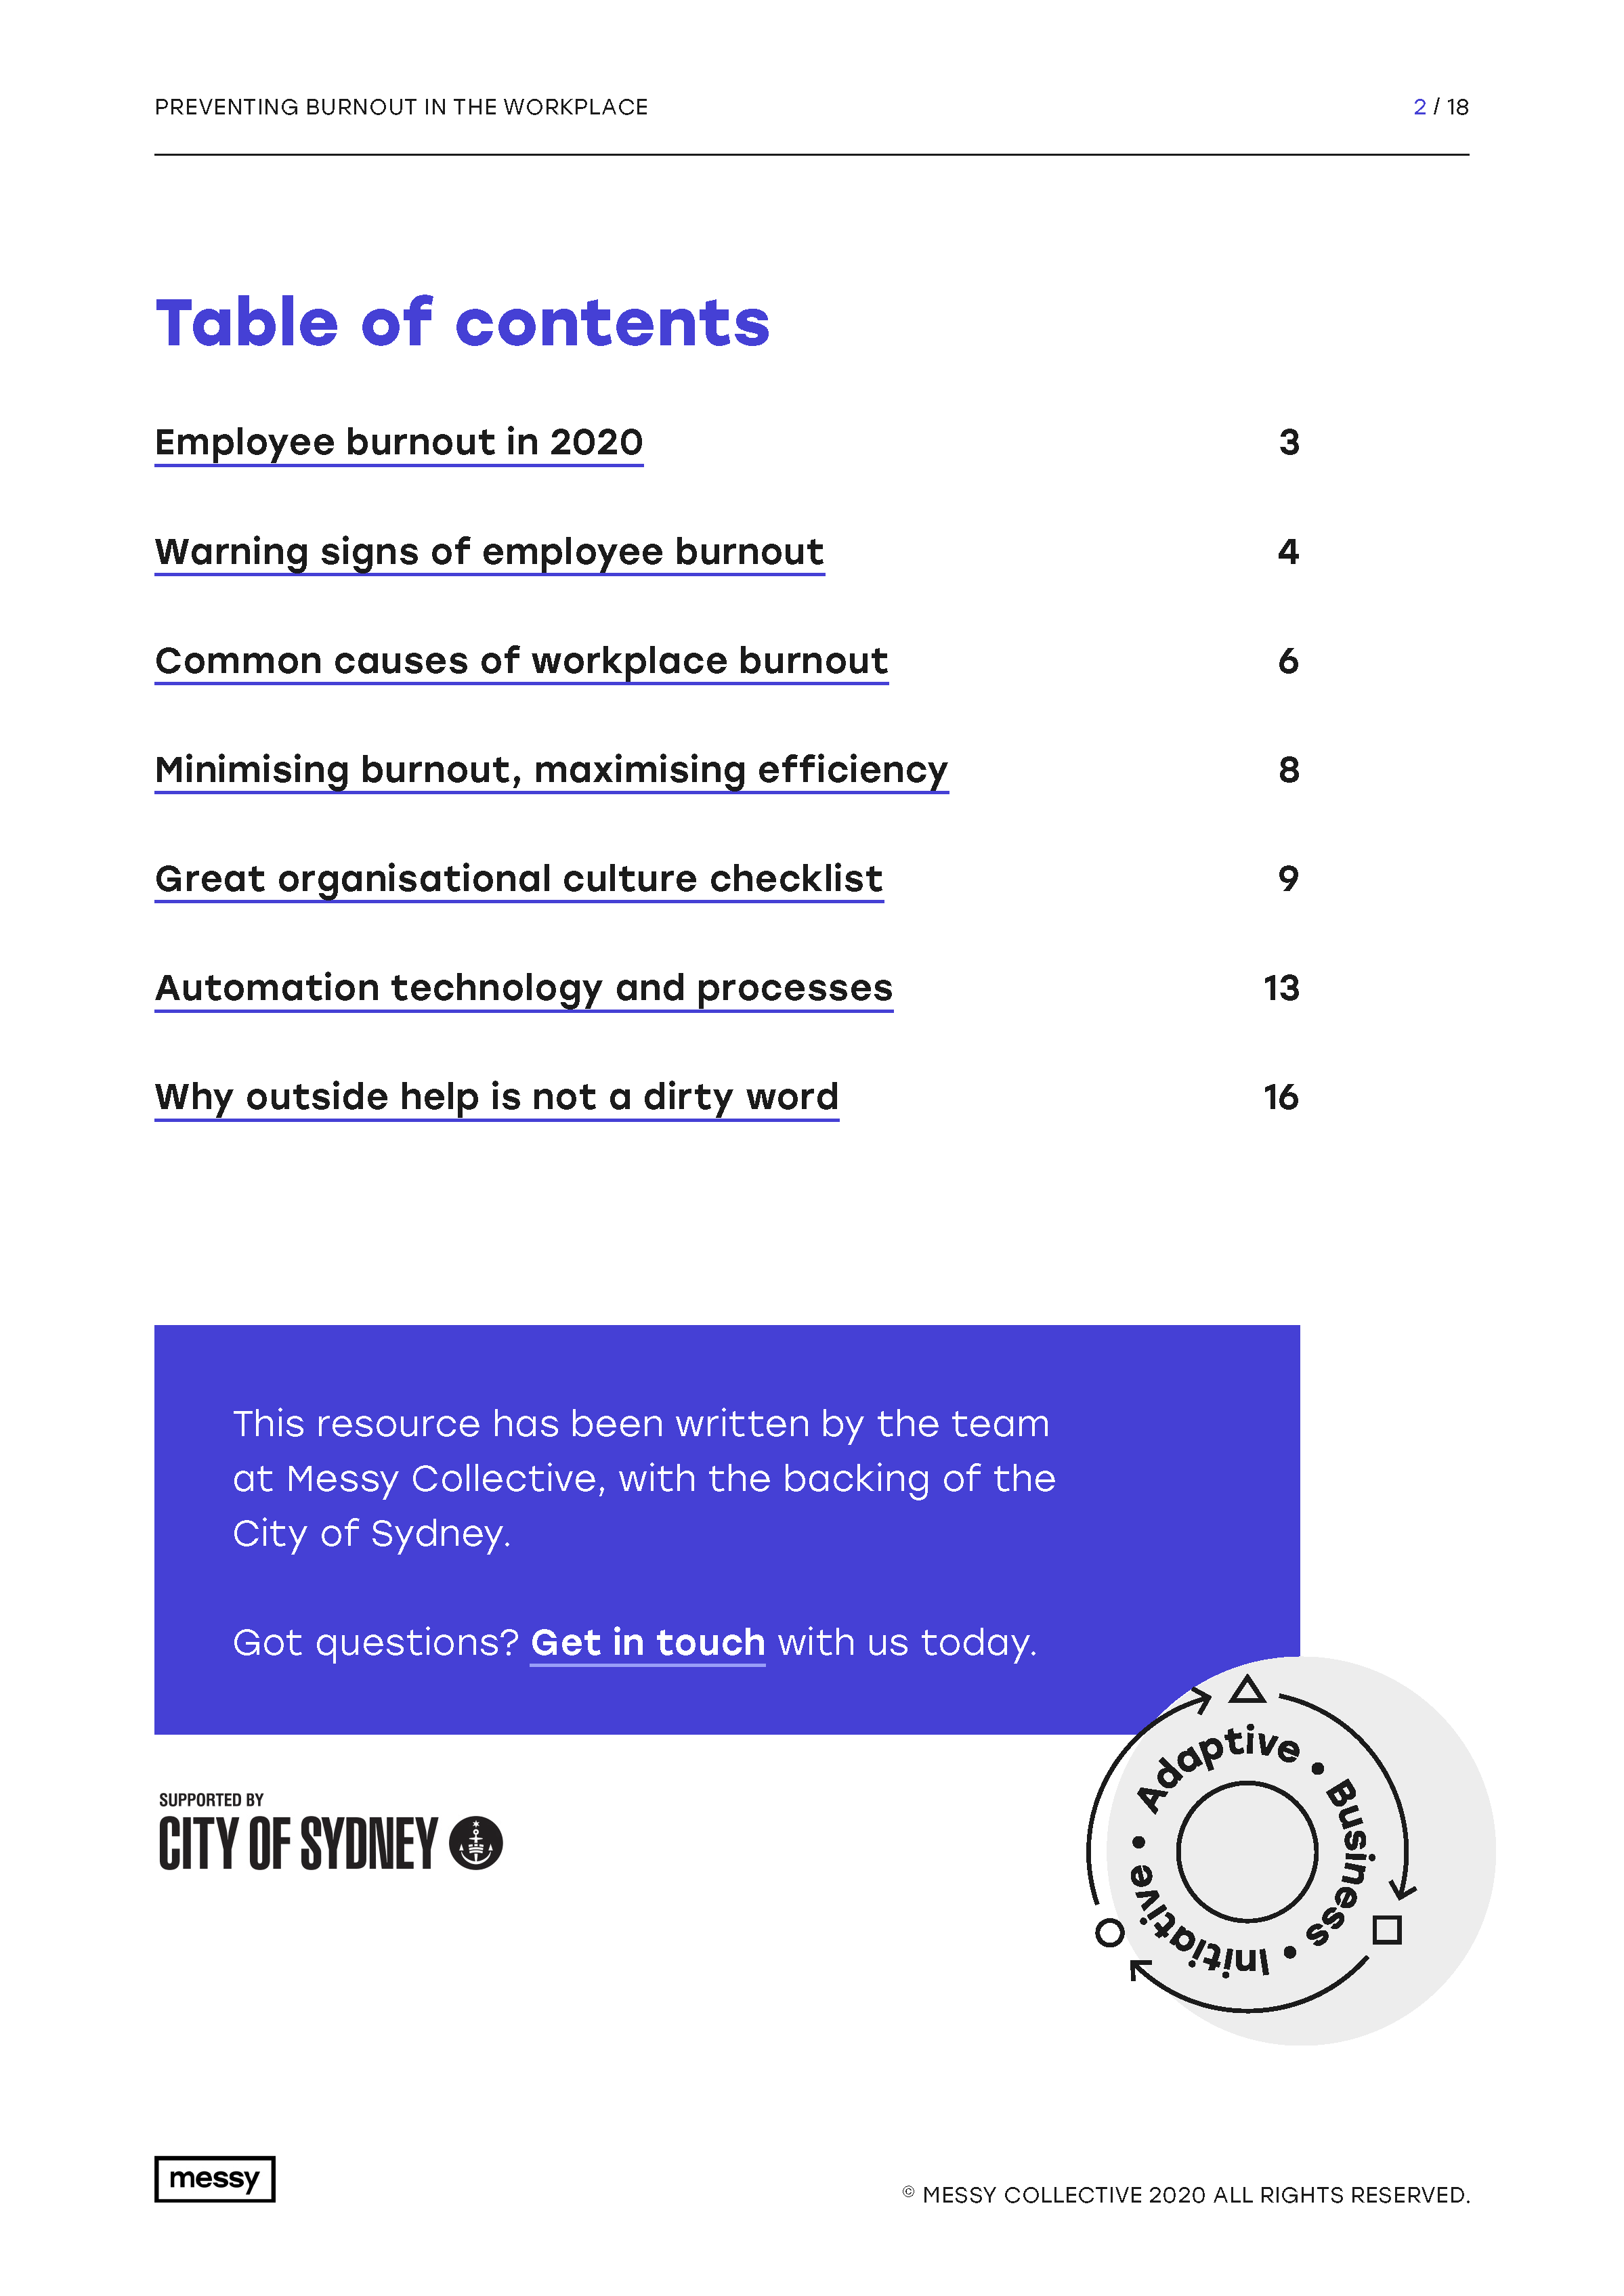 Preventing Burnout in the Workplace guide - page 2